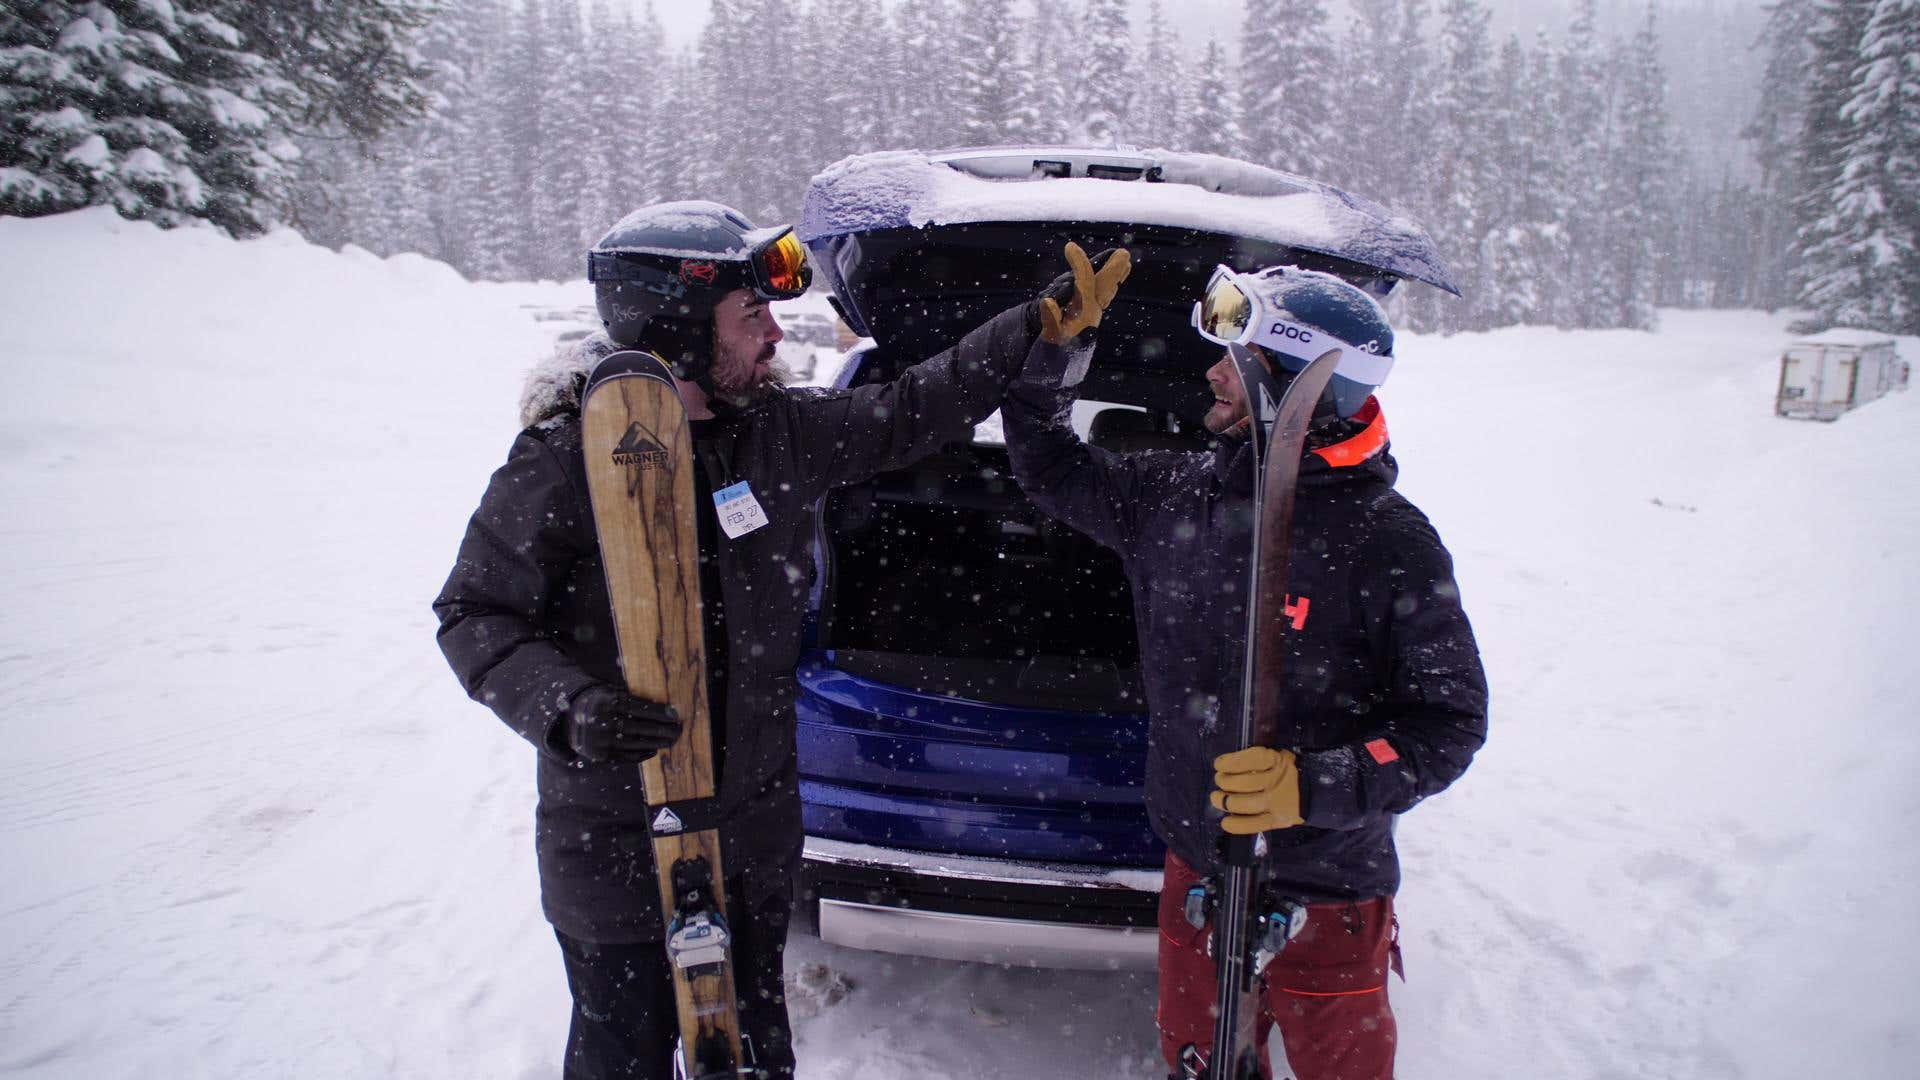 The author hi-fives his friend in front of a Rolls-Royce Cullinan SUV.